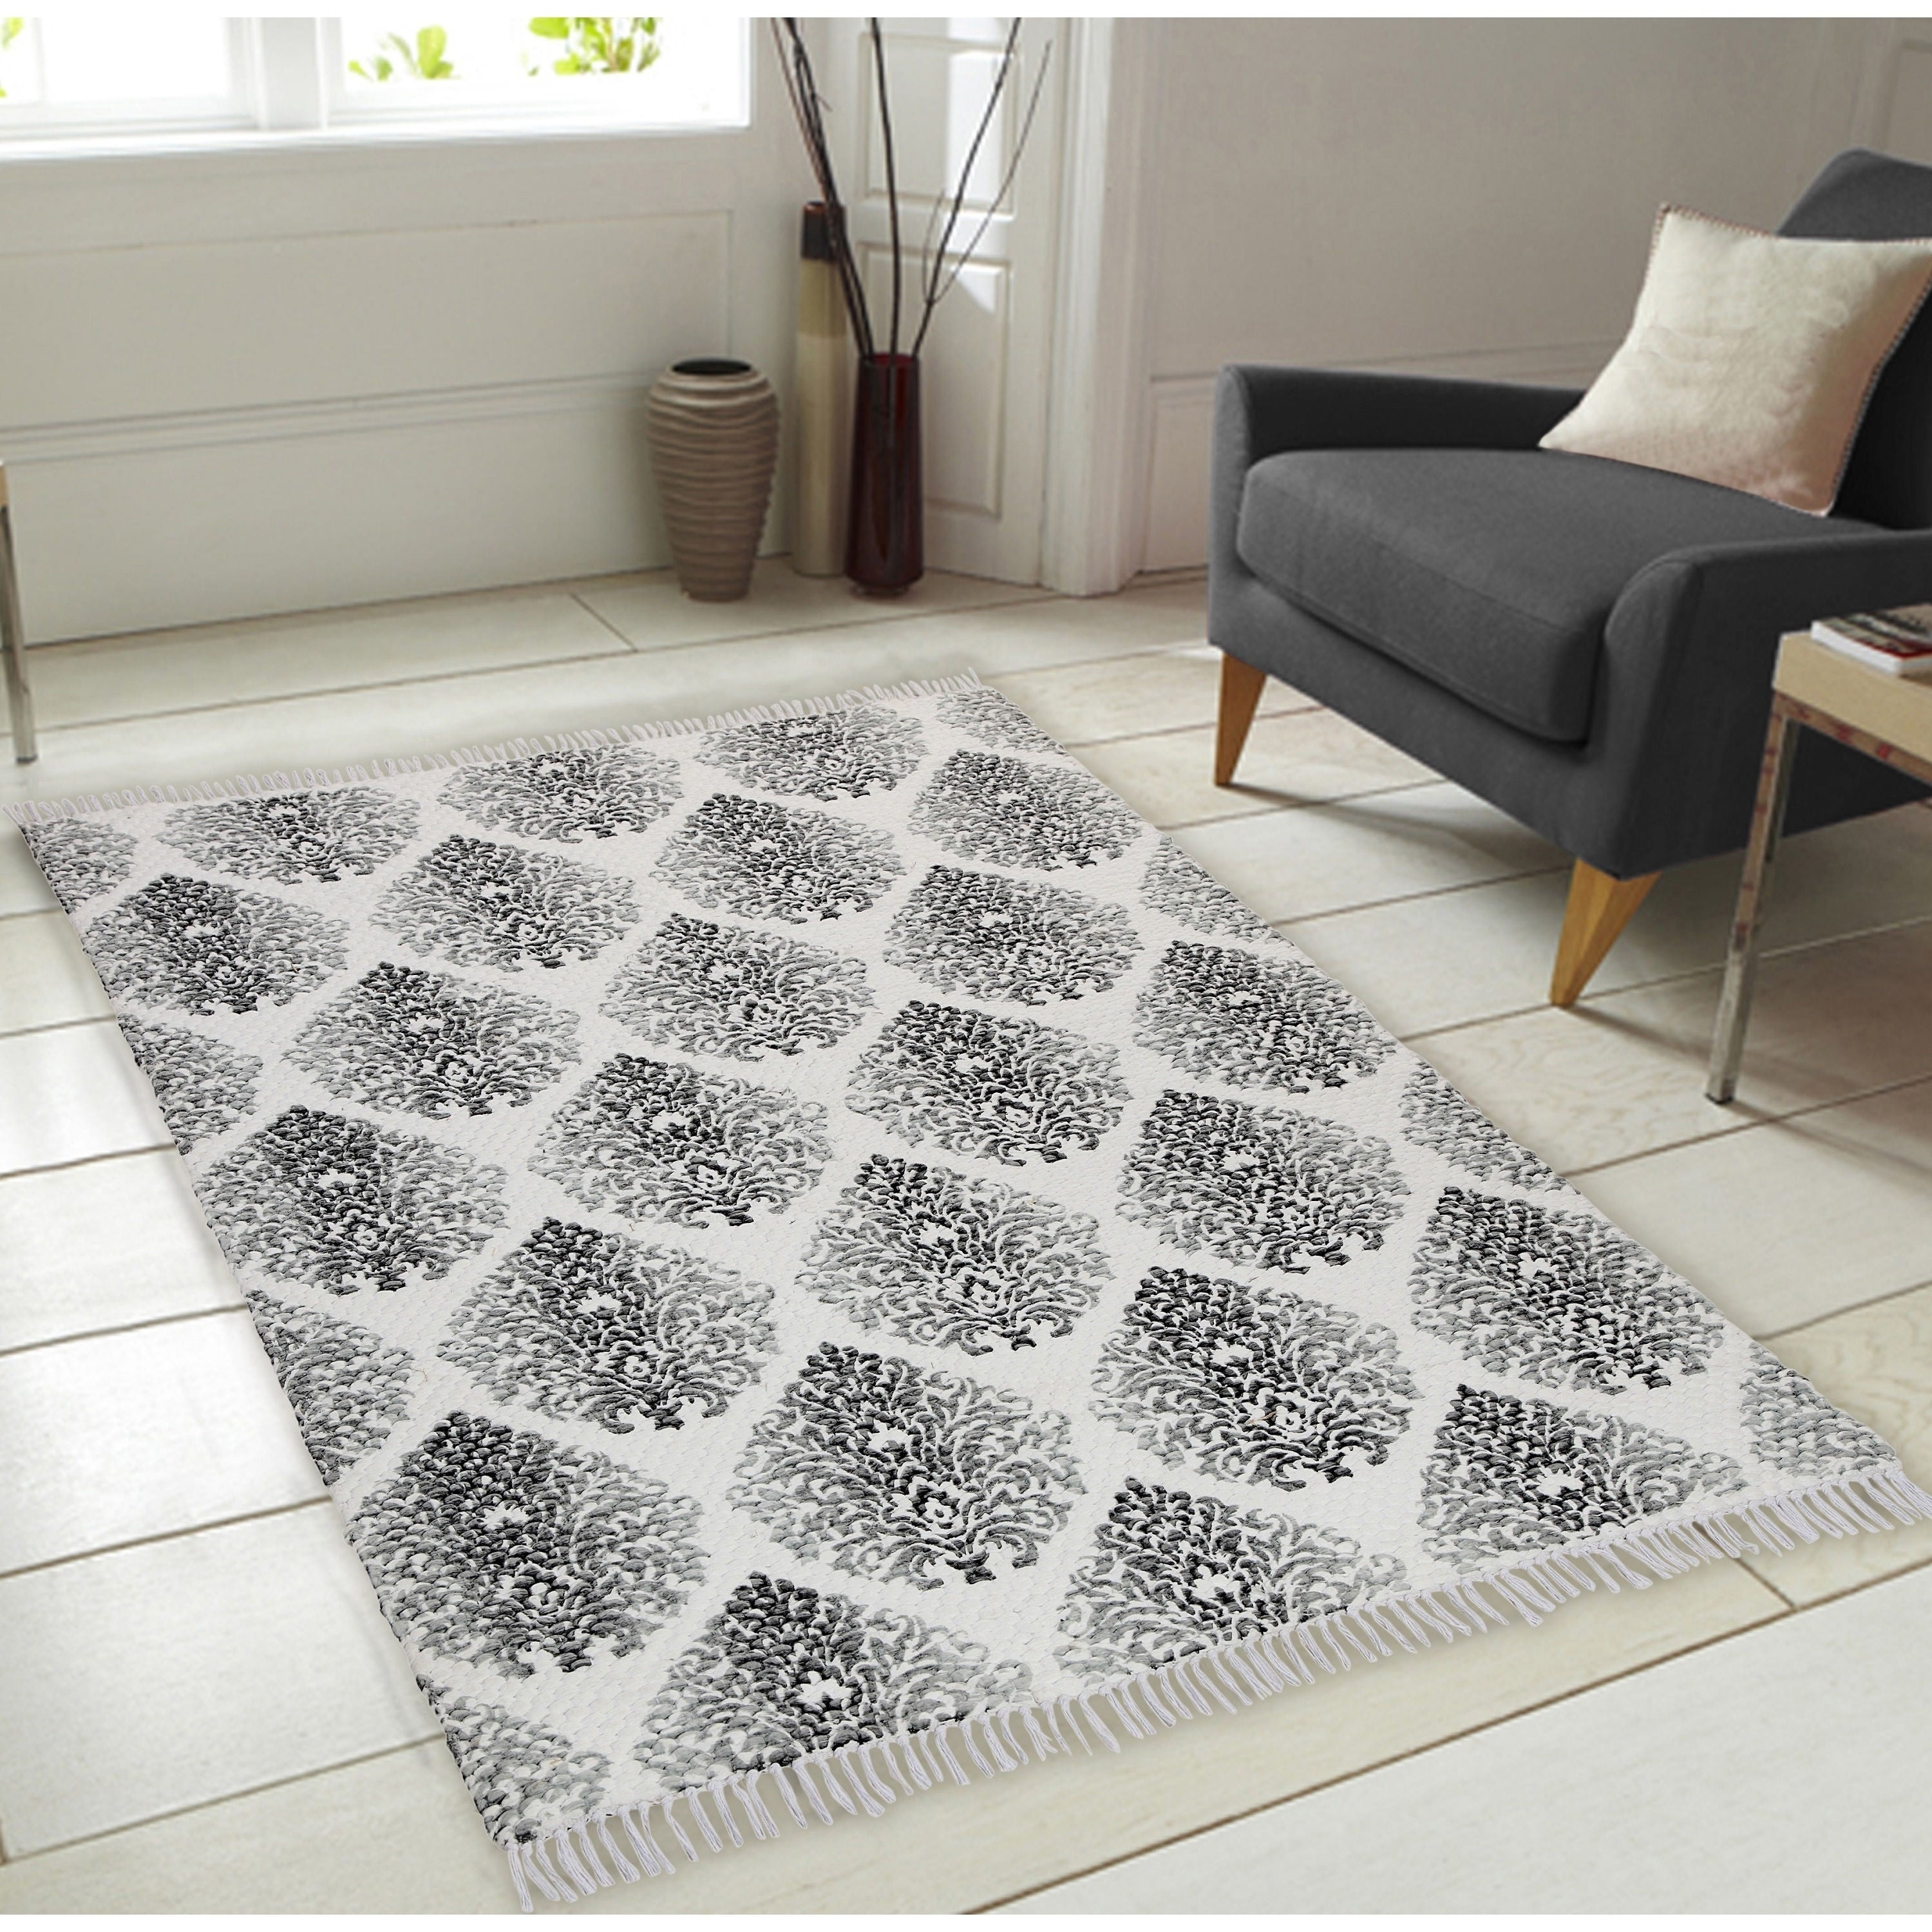 Shop Printed Pattern Hand Woven Vintage Area Rug